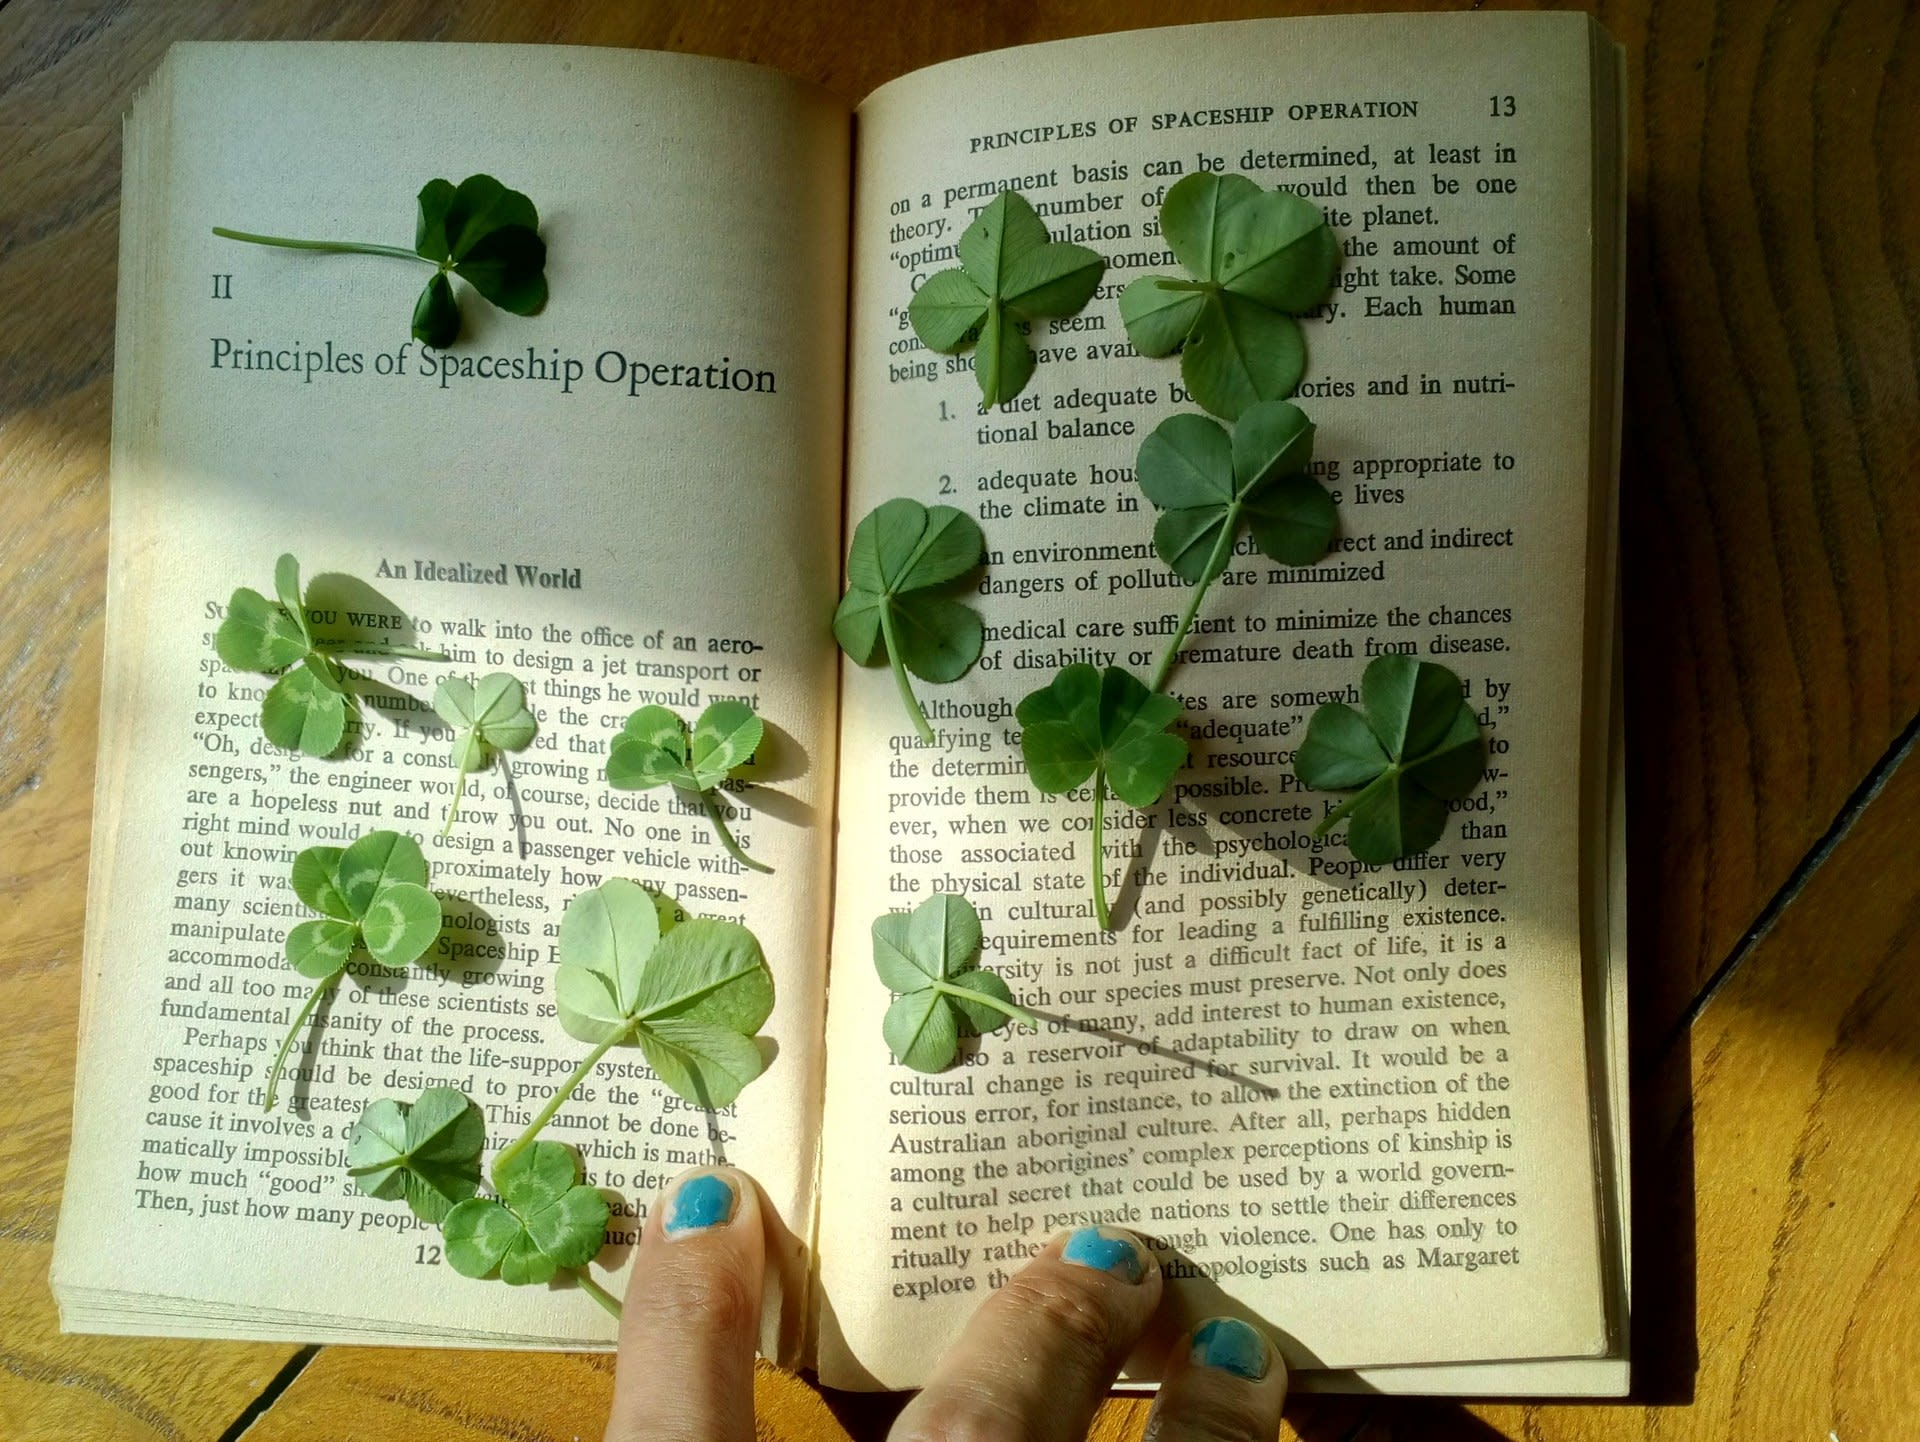 Go out into the garden in the rain, pick a few. Put them in a book to dry.